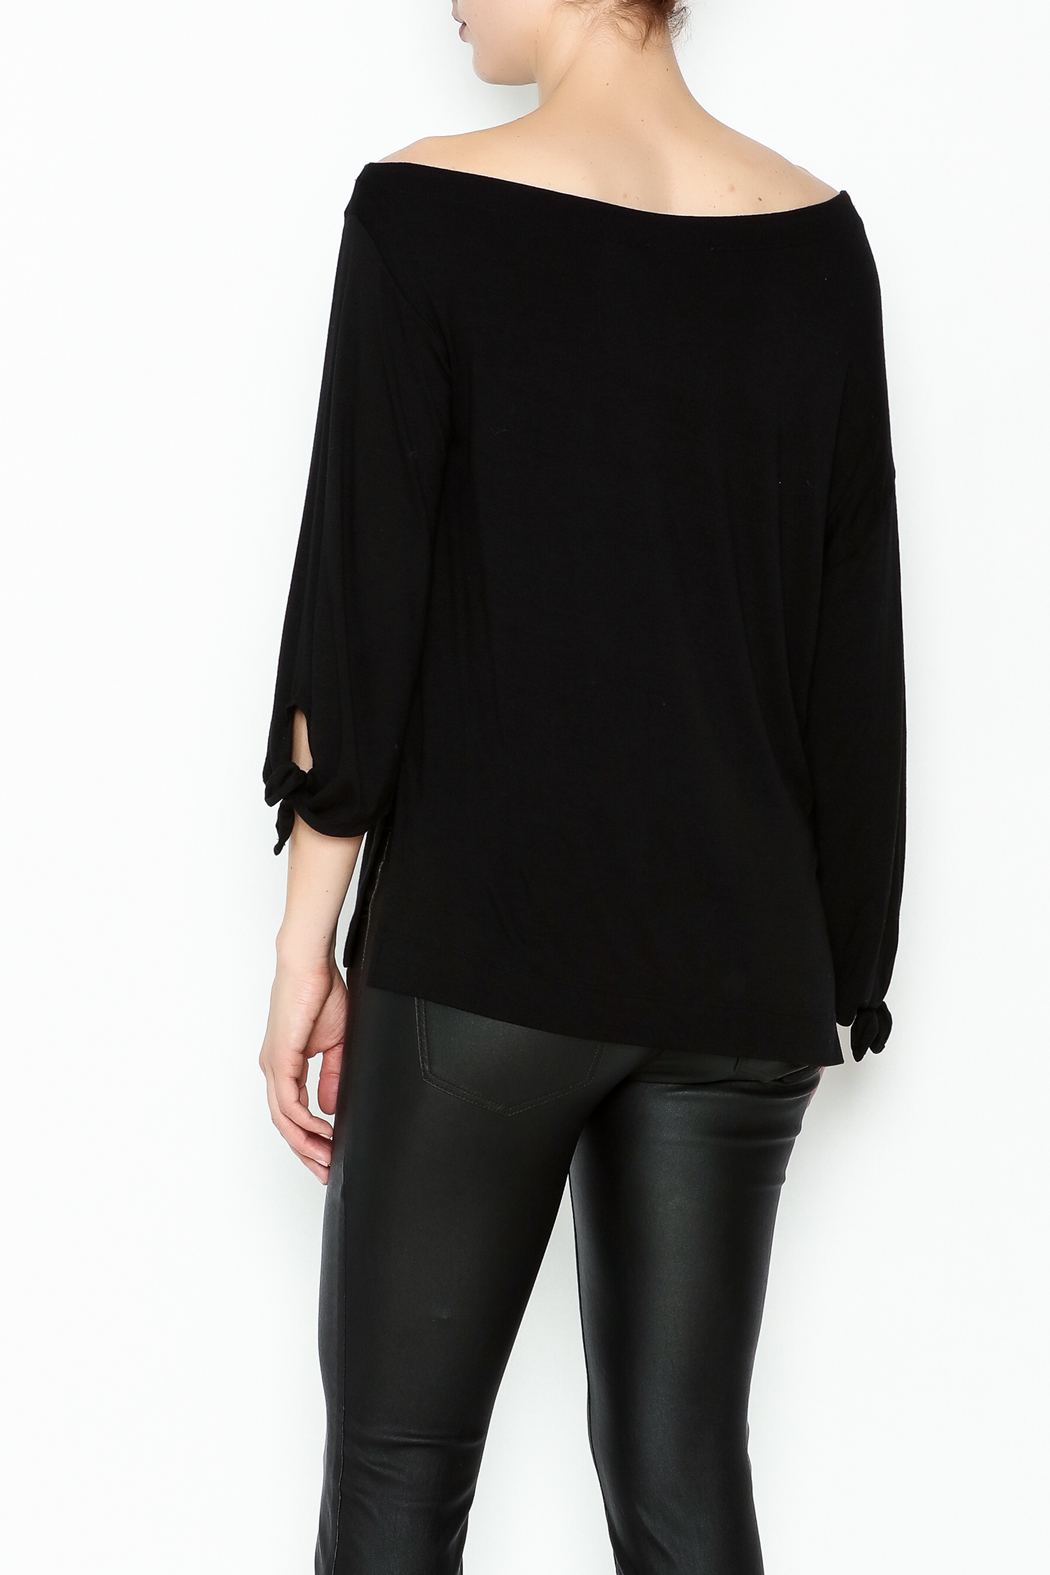 Ella Moss Black Off Shoulder Top - Back Cropped Image